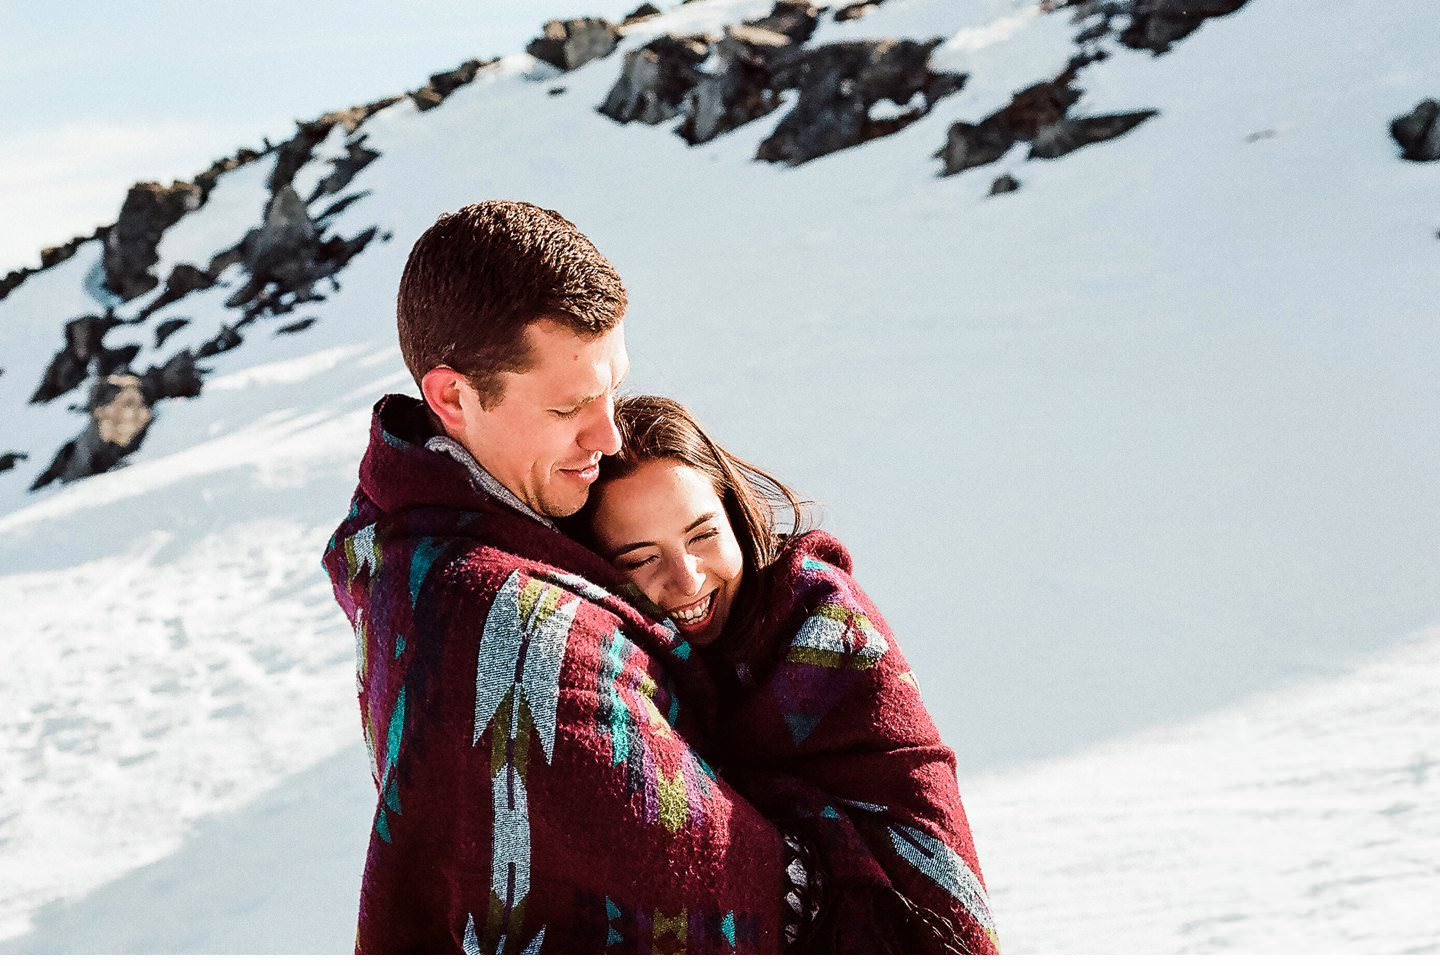 022-Cardrona-Couples-Session-Photography.jpg